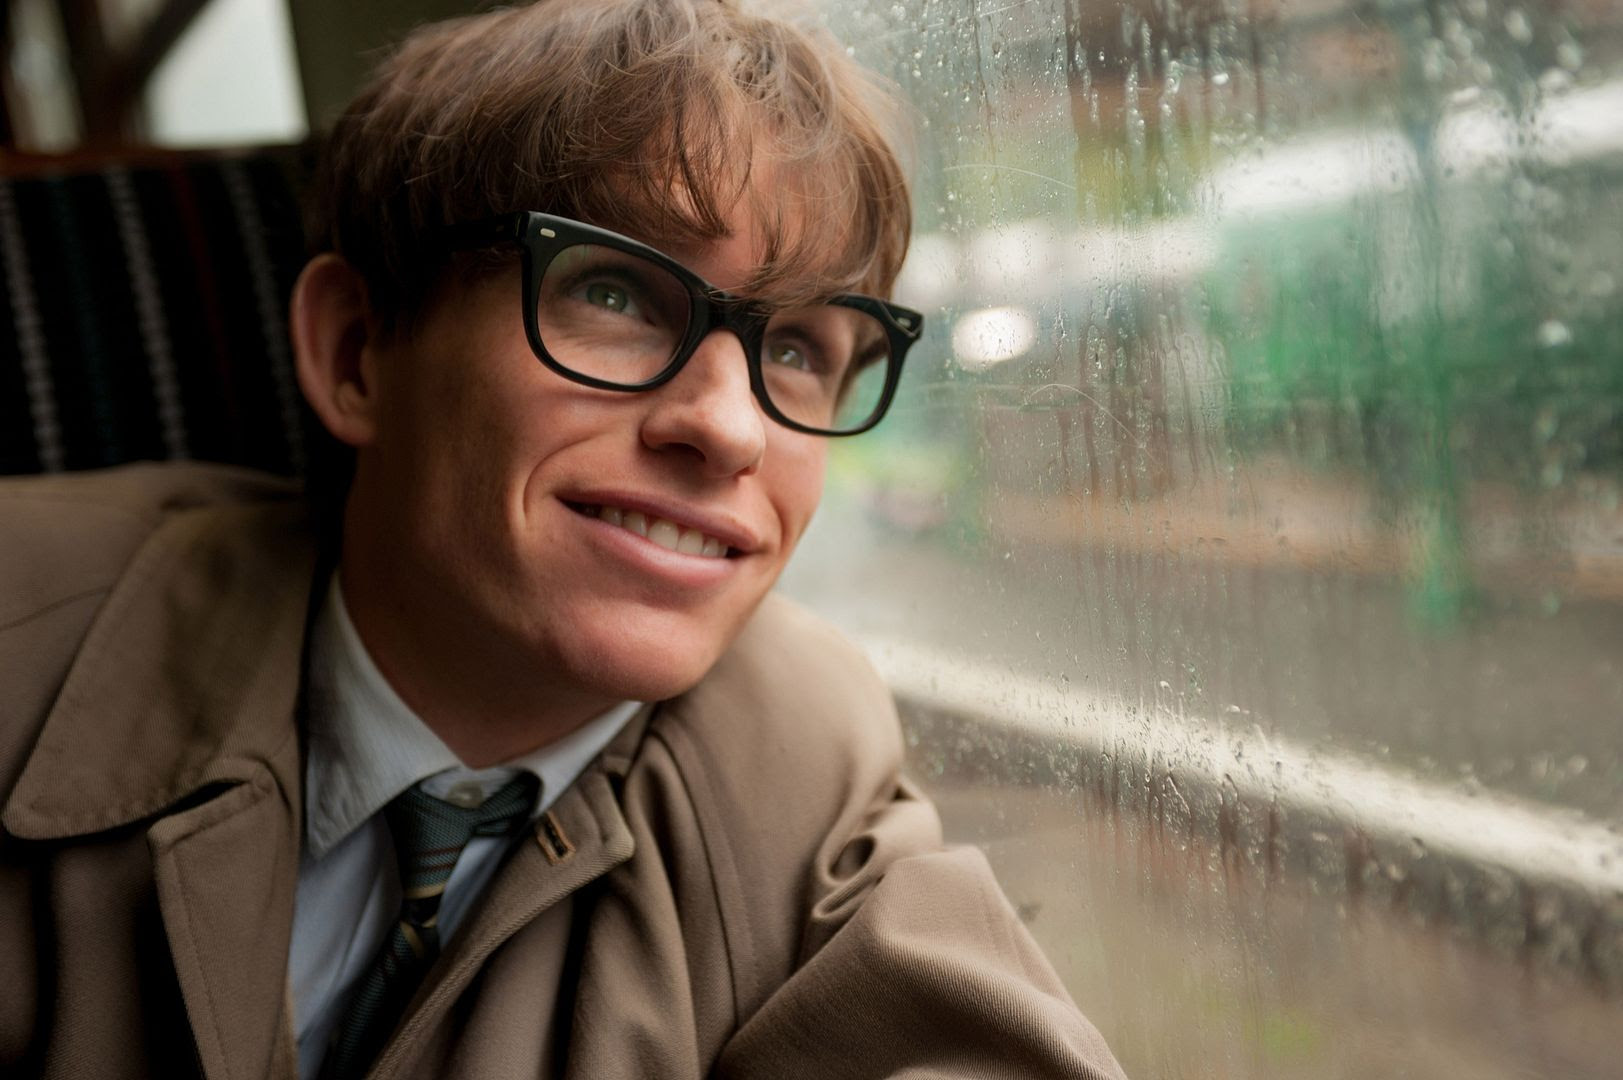 photo the-theory-of-everything-eddie-redmayne-2-3_zps8wk9og5r.jpg